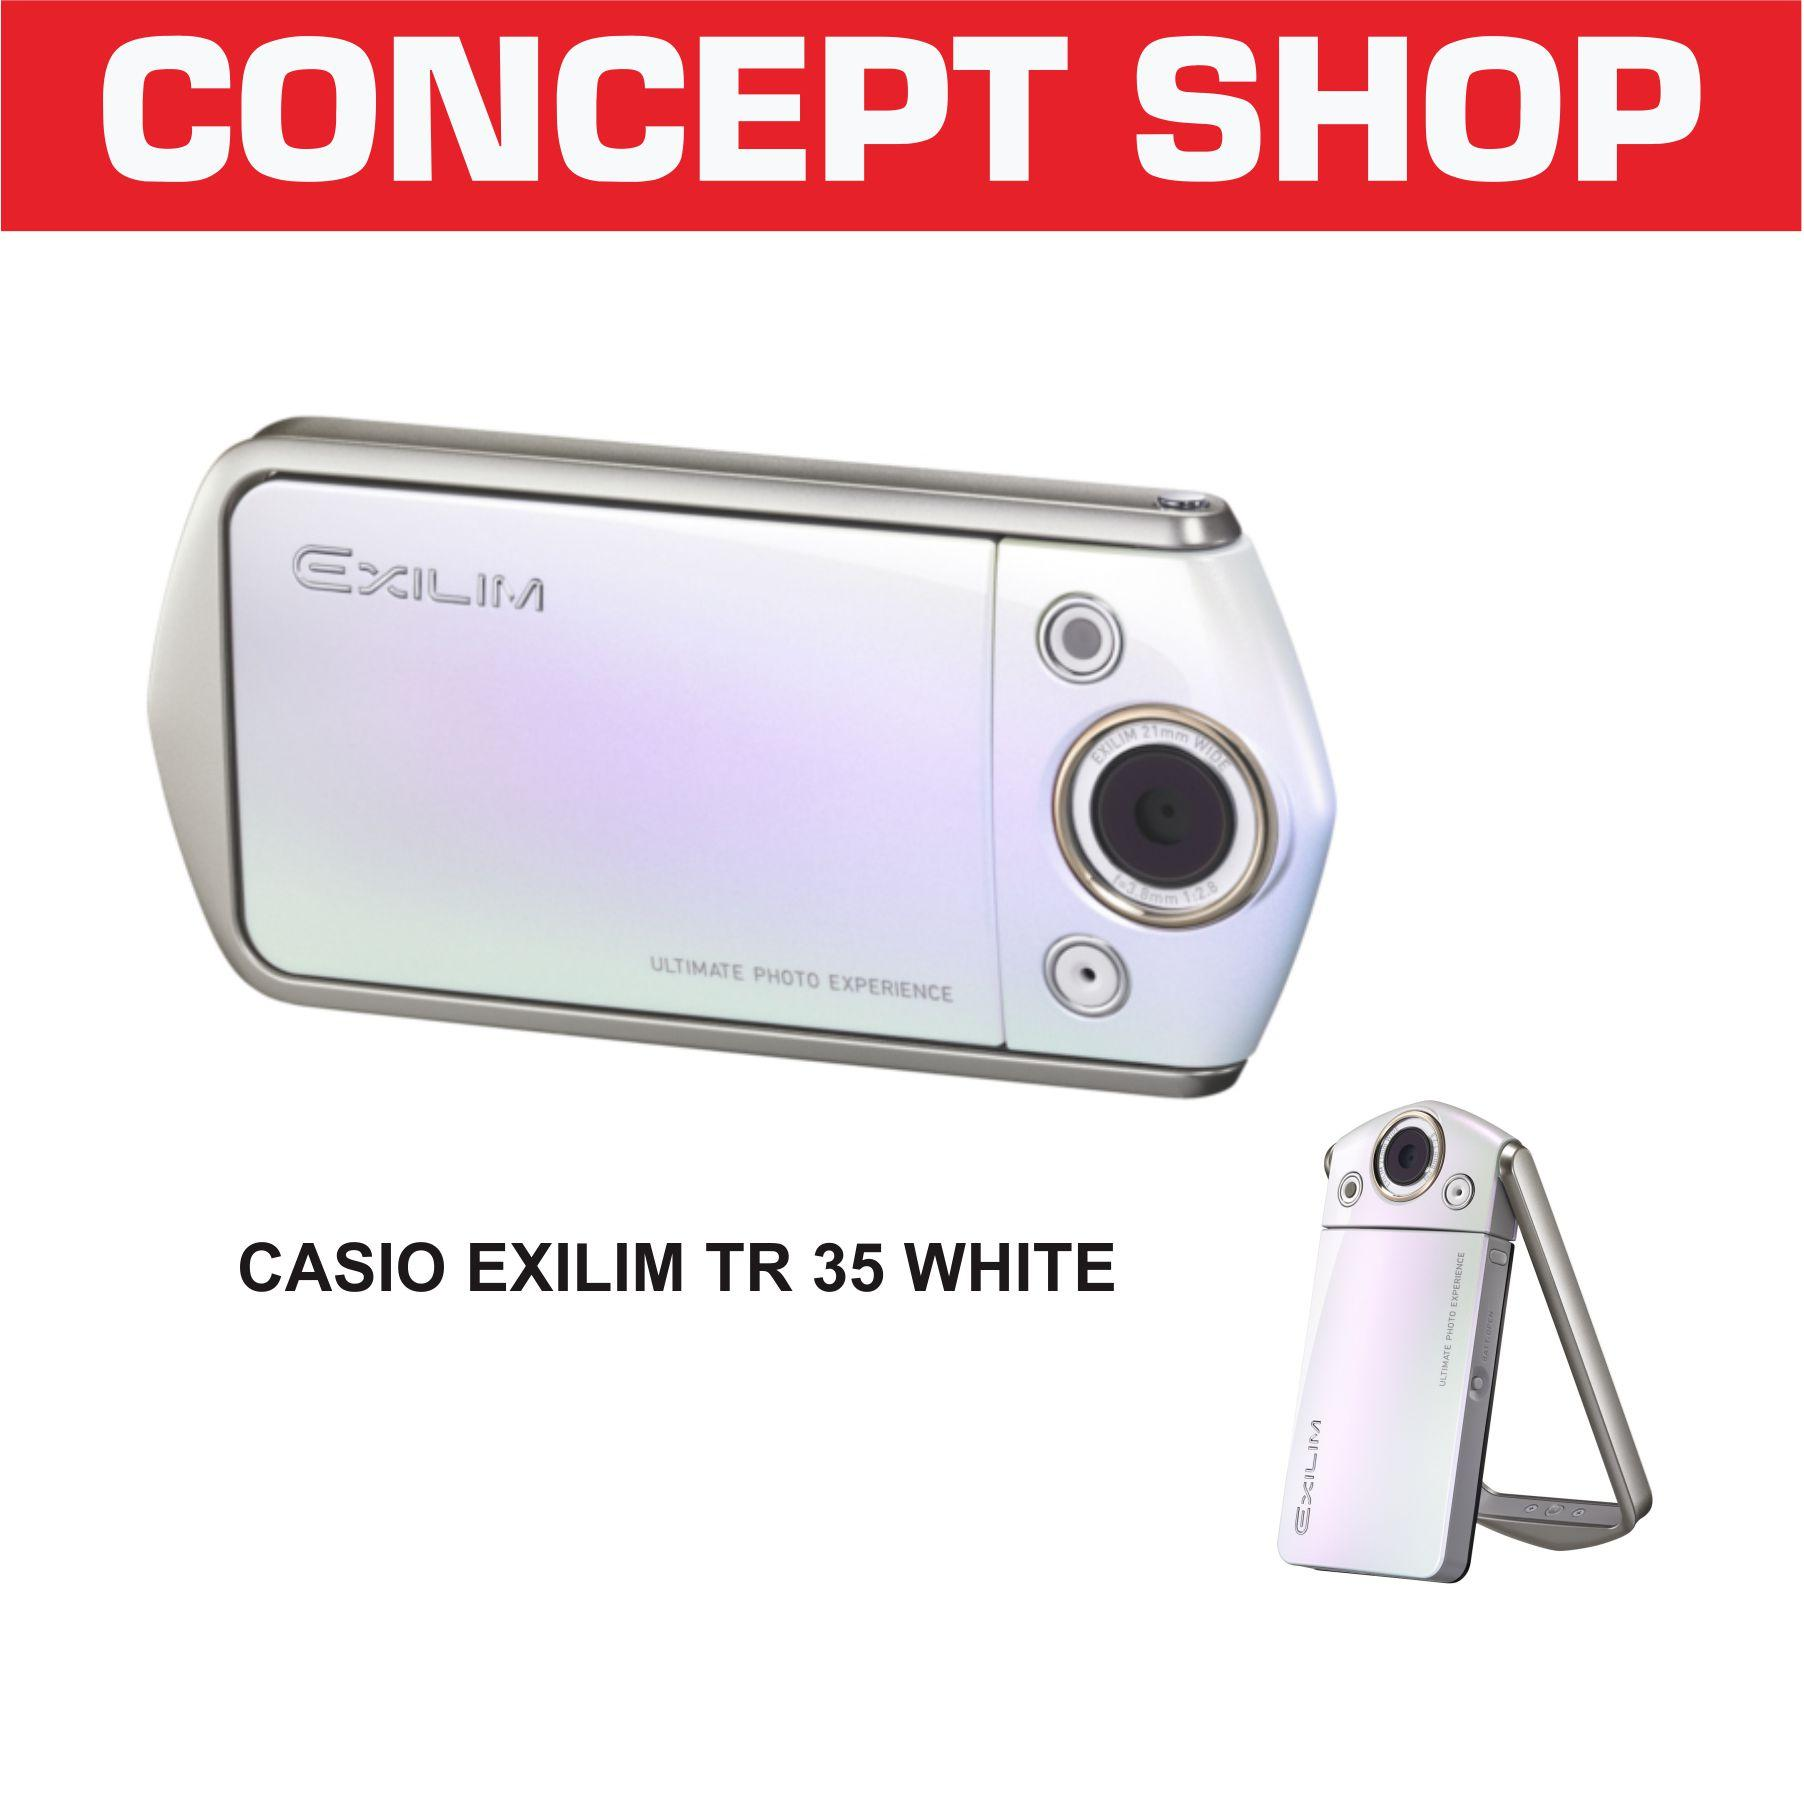 CASIO EXILIM TR 35 WHITE. TR 35 KAMERA DIGITAL